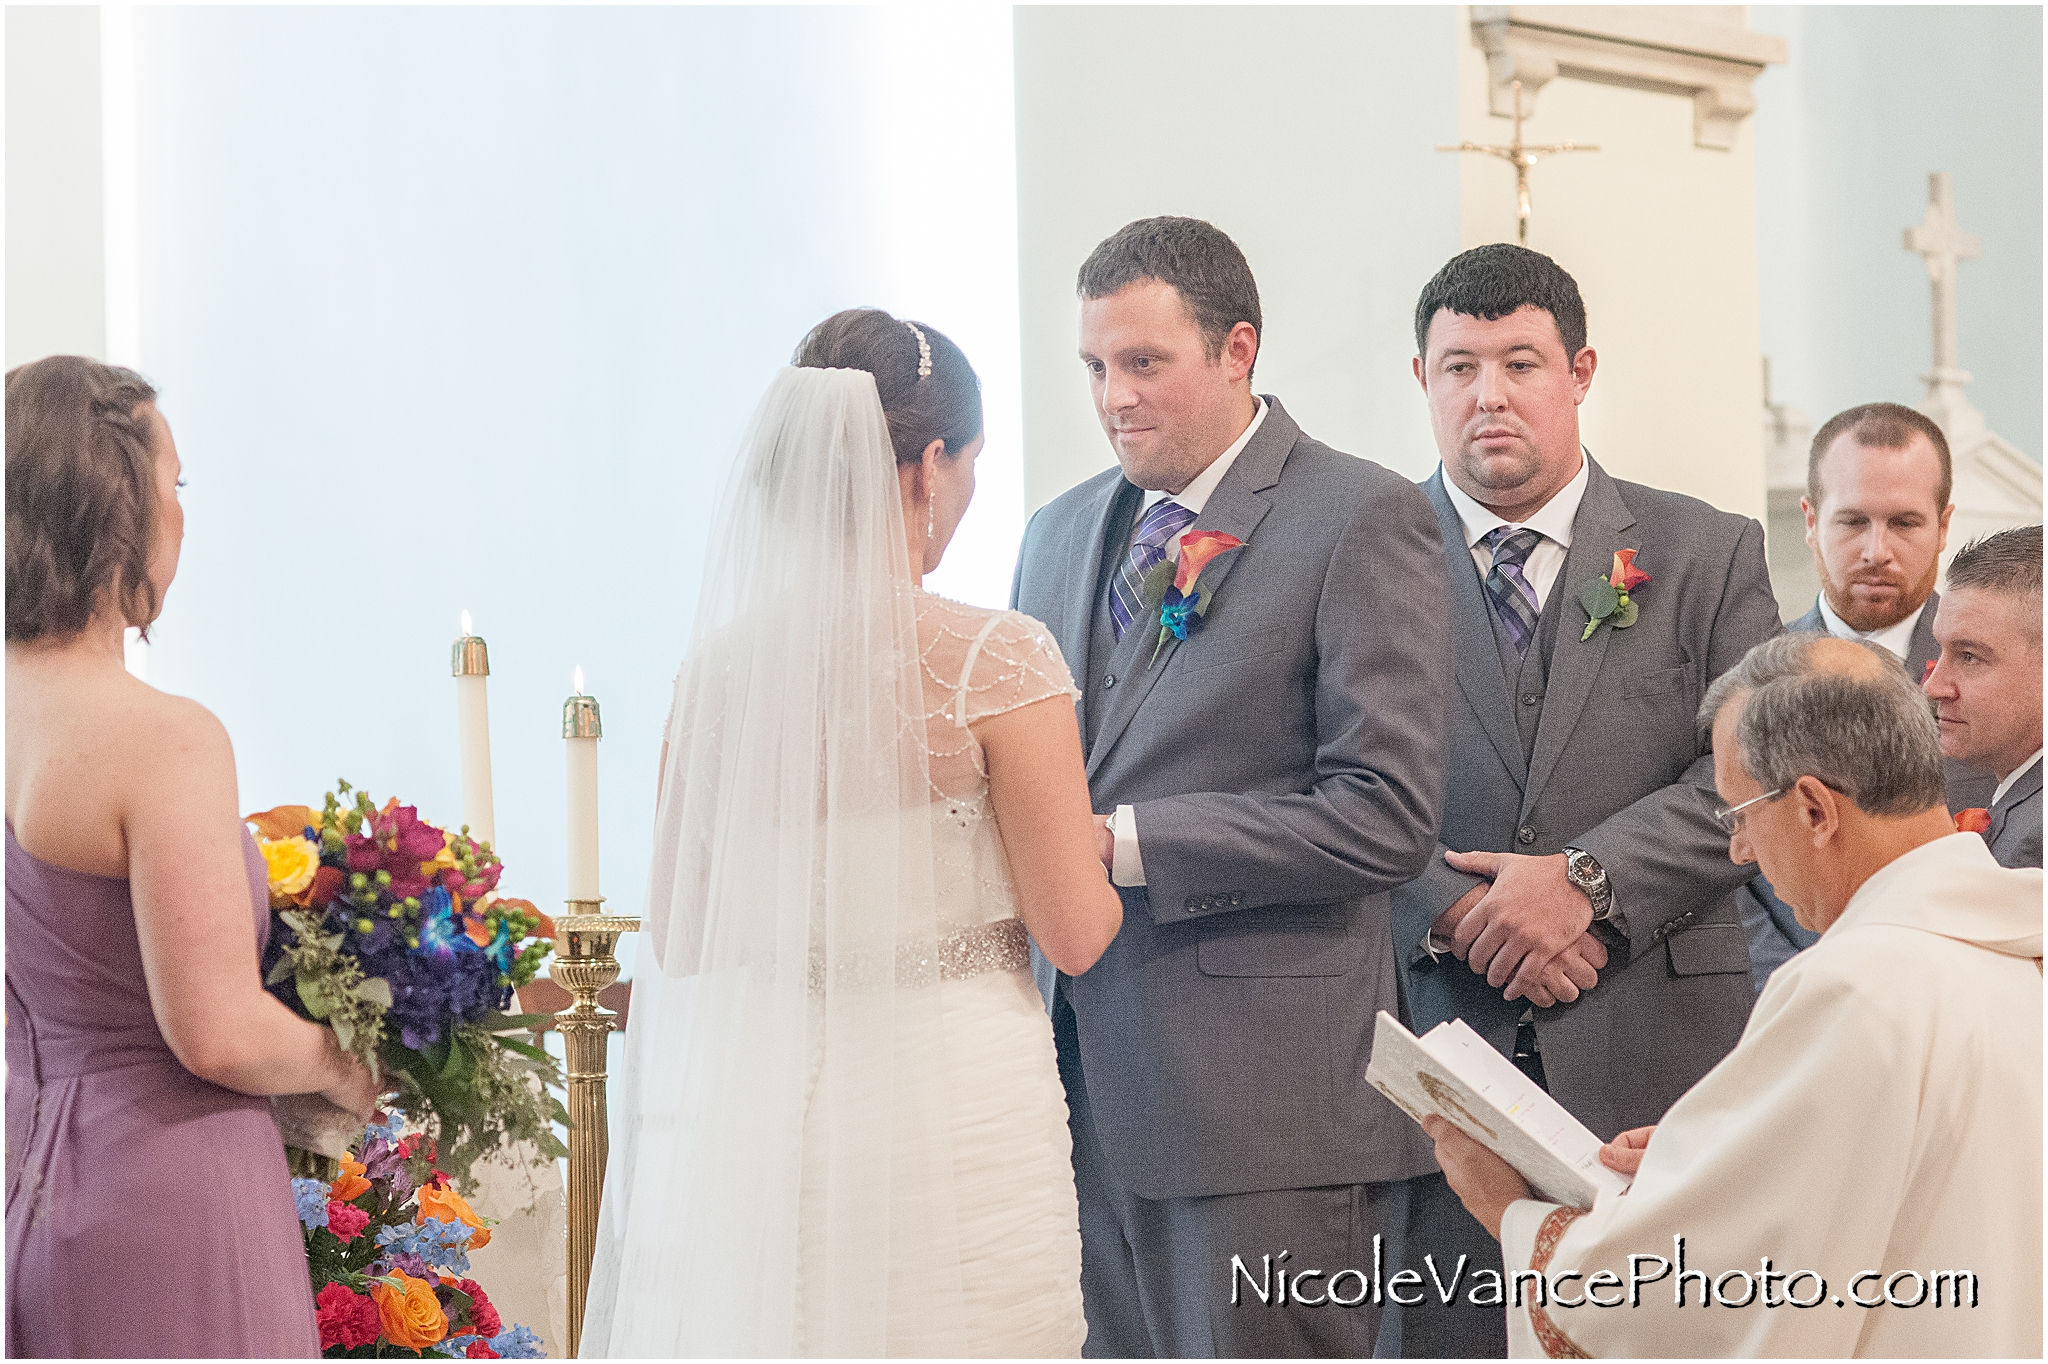 The bride and groom exchange vows and rings during their wedding ceremony at St Peter's Catholic Church in Richmond, VA.